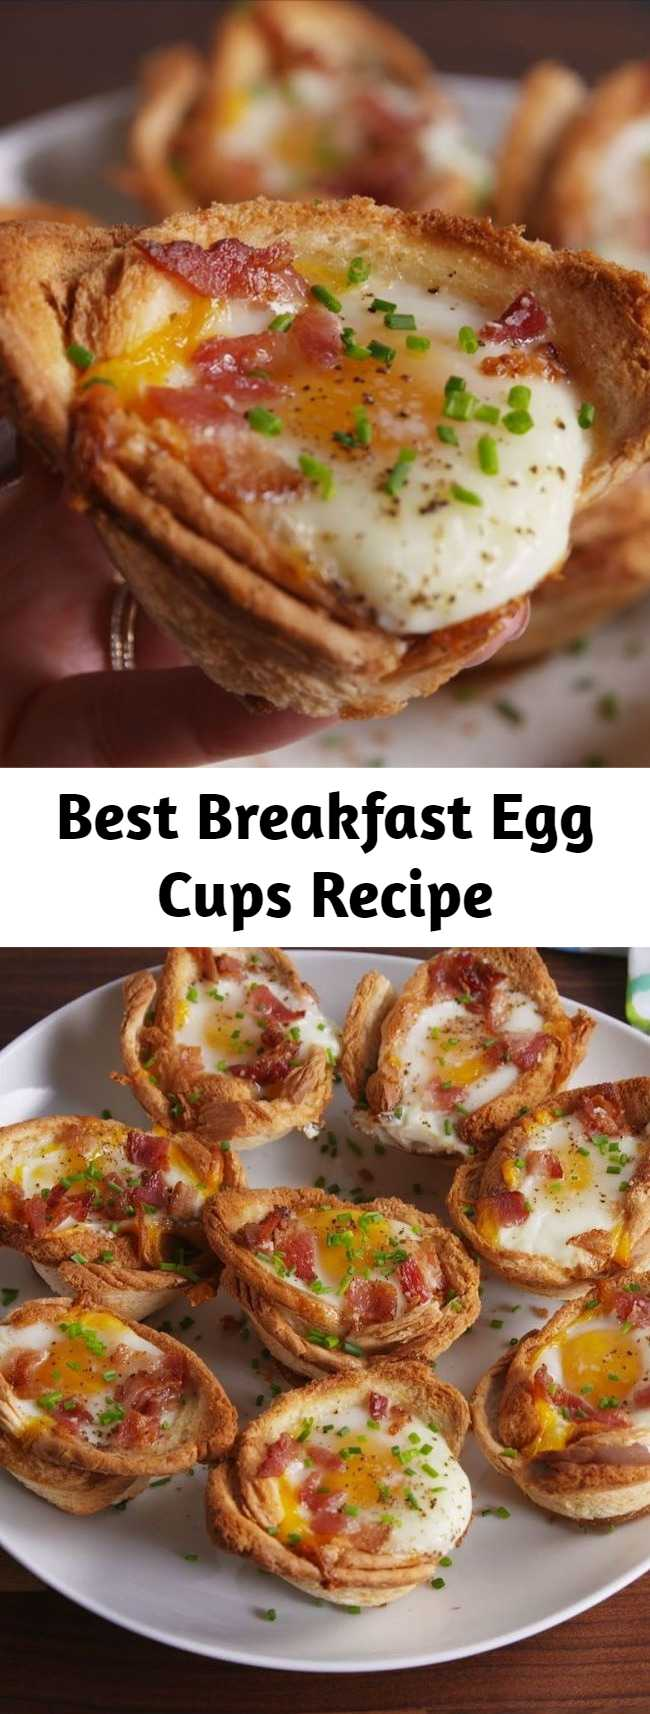 Best Breakfast Egg Cups Recipe - This Breakfast Egg Cups Recipe is the perfect breakfast on-the-go. #food #breakfast #eggs #brunch #easyrecipe